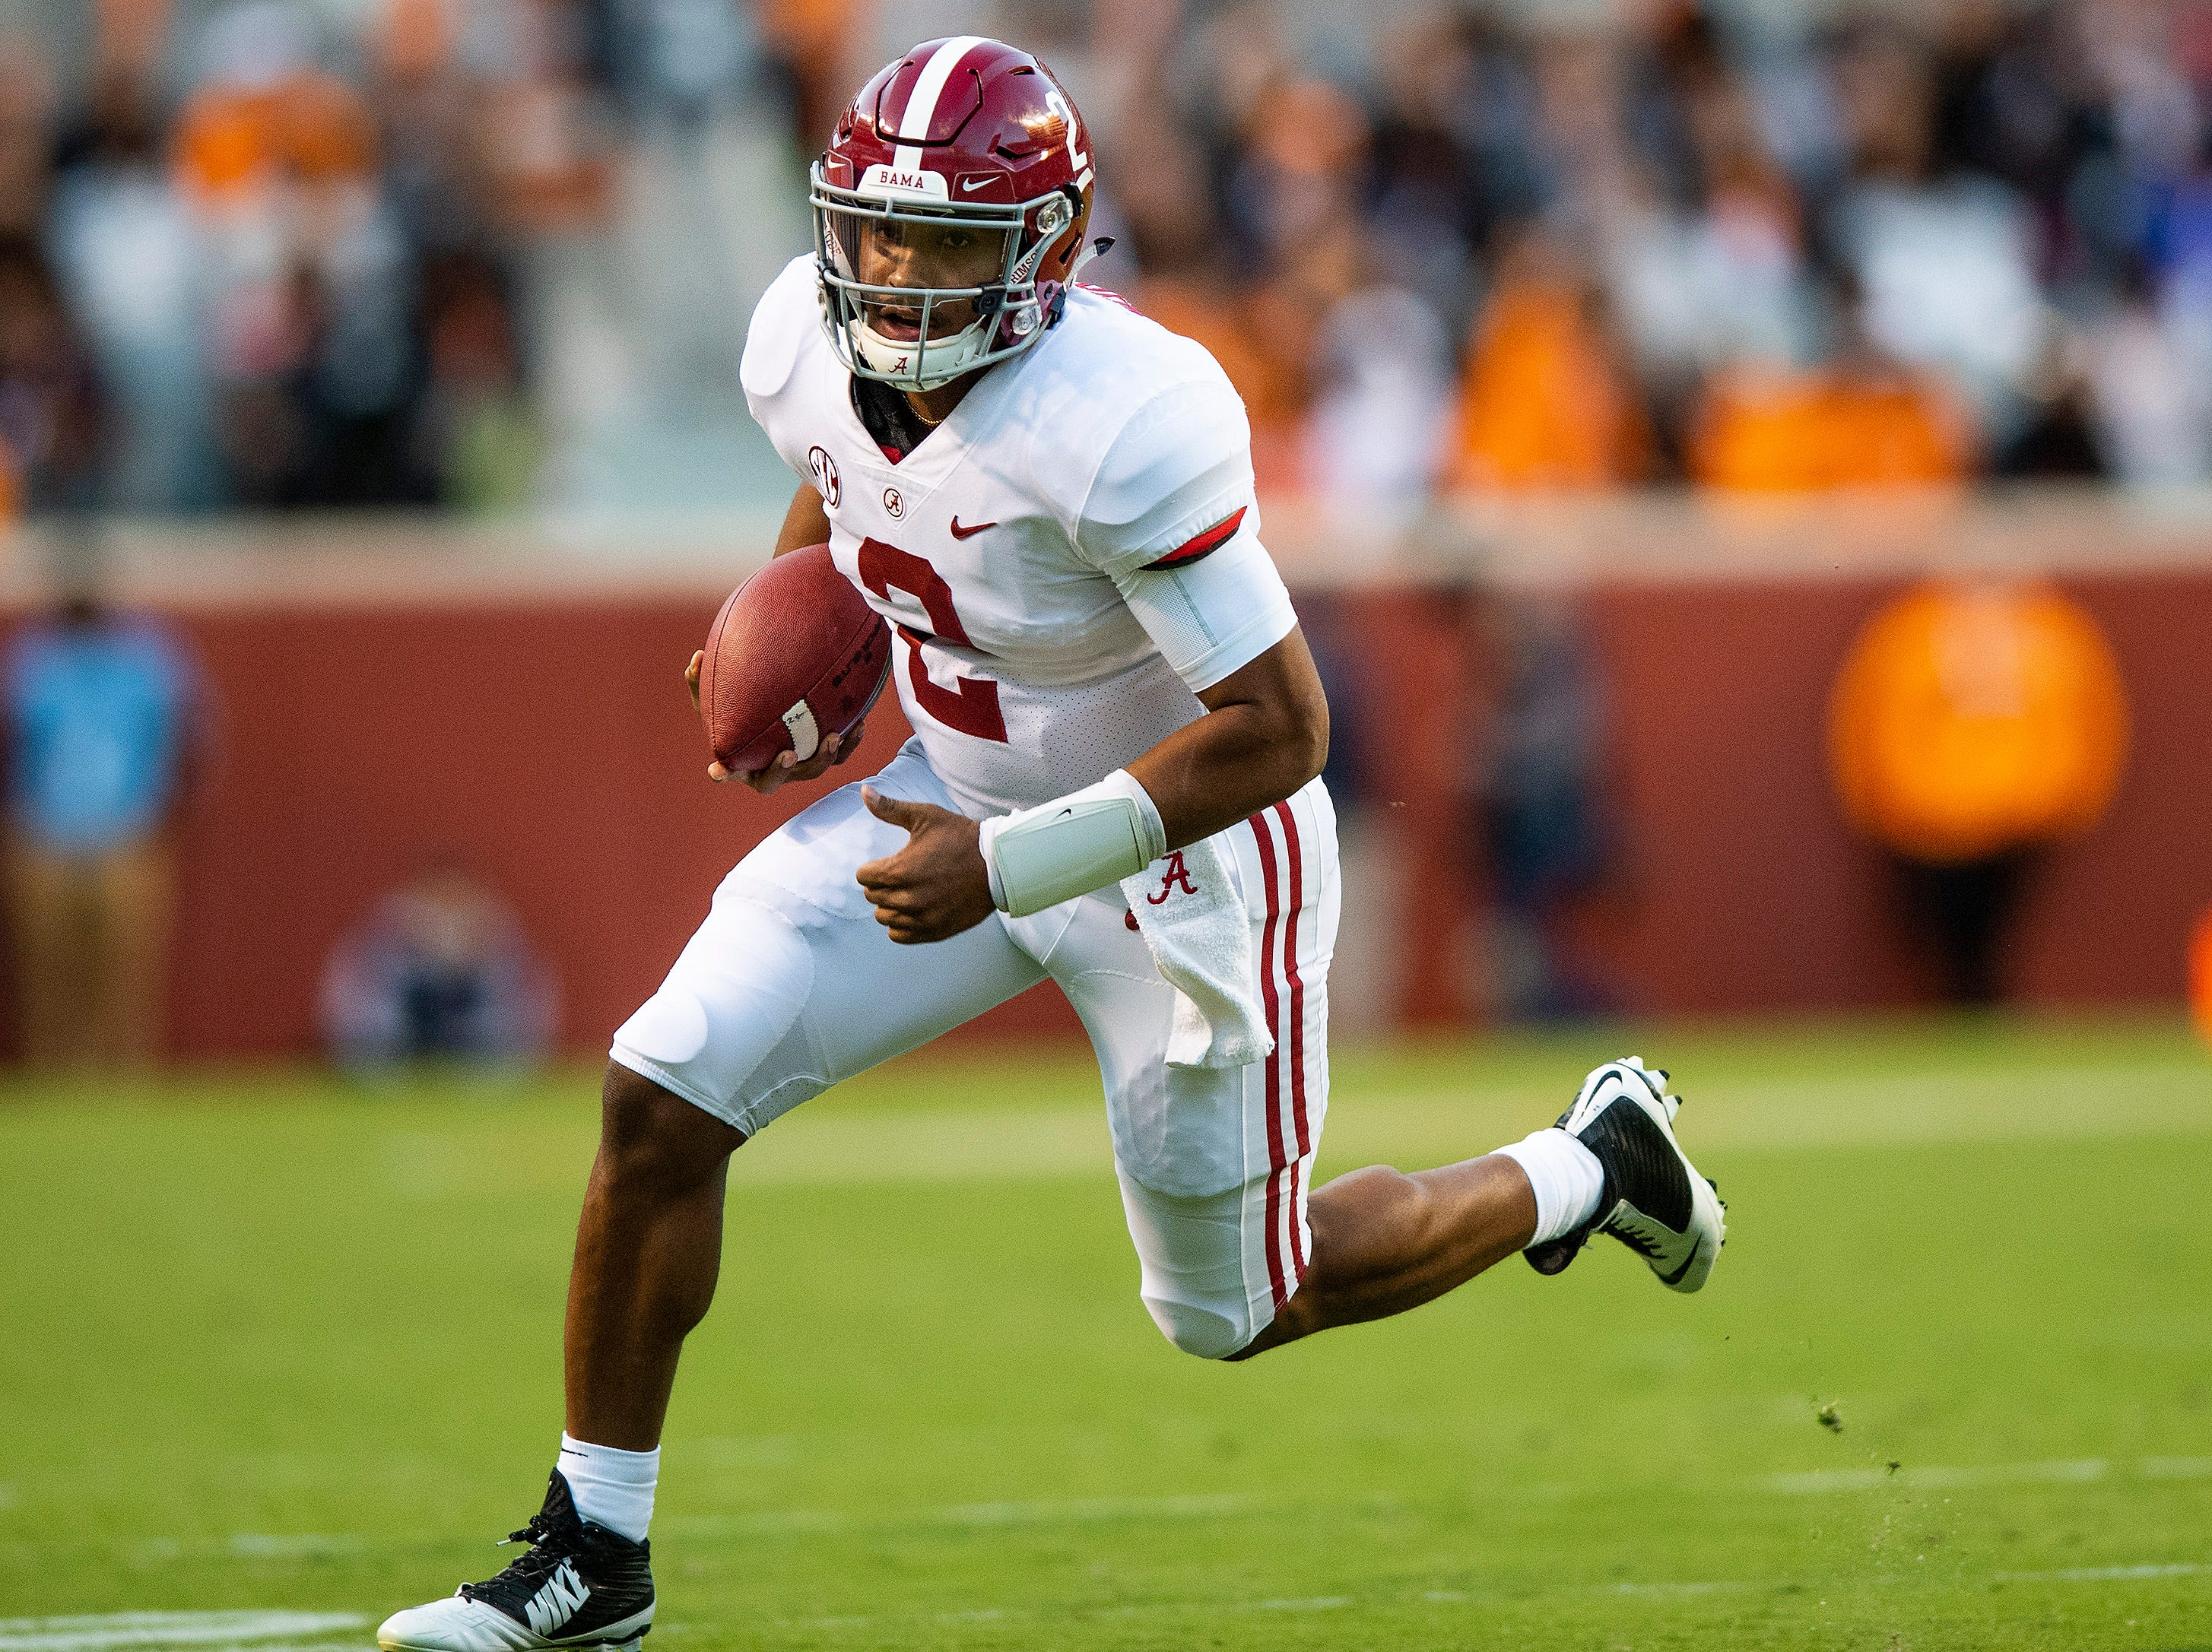 Alabama quarterback Jalen Hurts (2) rushes for a touchdown against Tennessee in second half action at Neyland Stadium in Knoxville, Tn., on Saturday October 20, 2018.